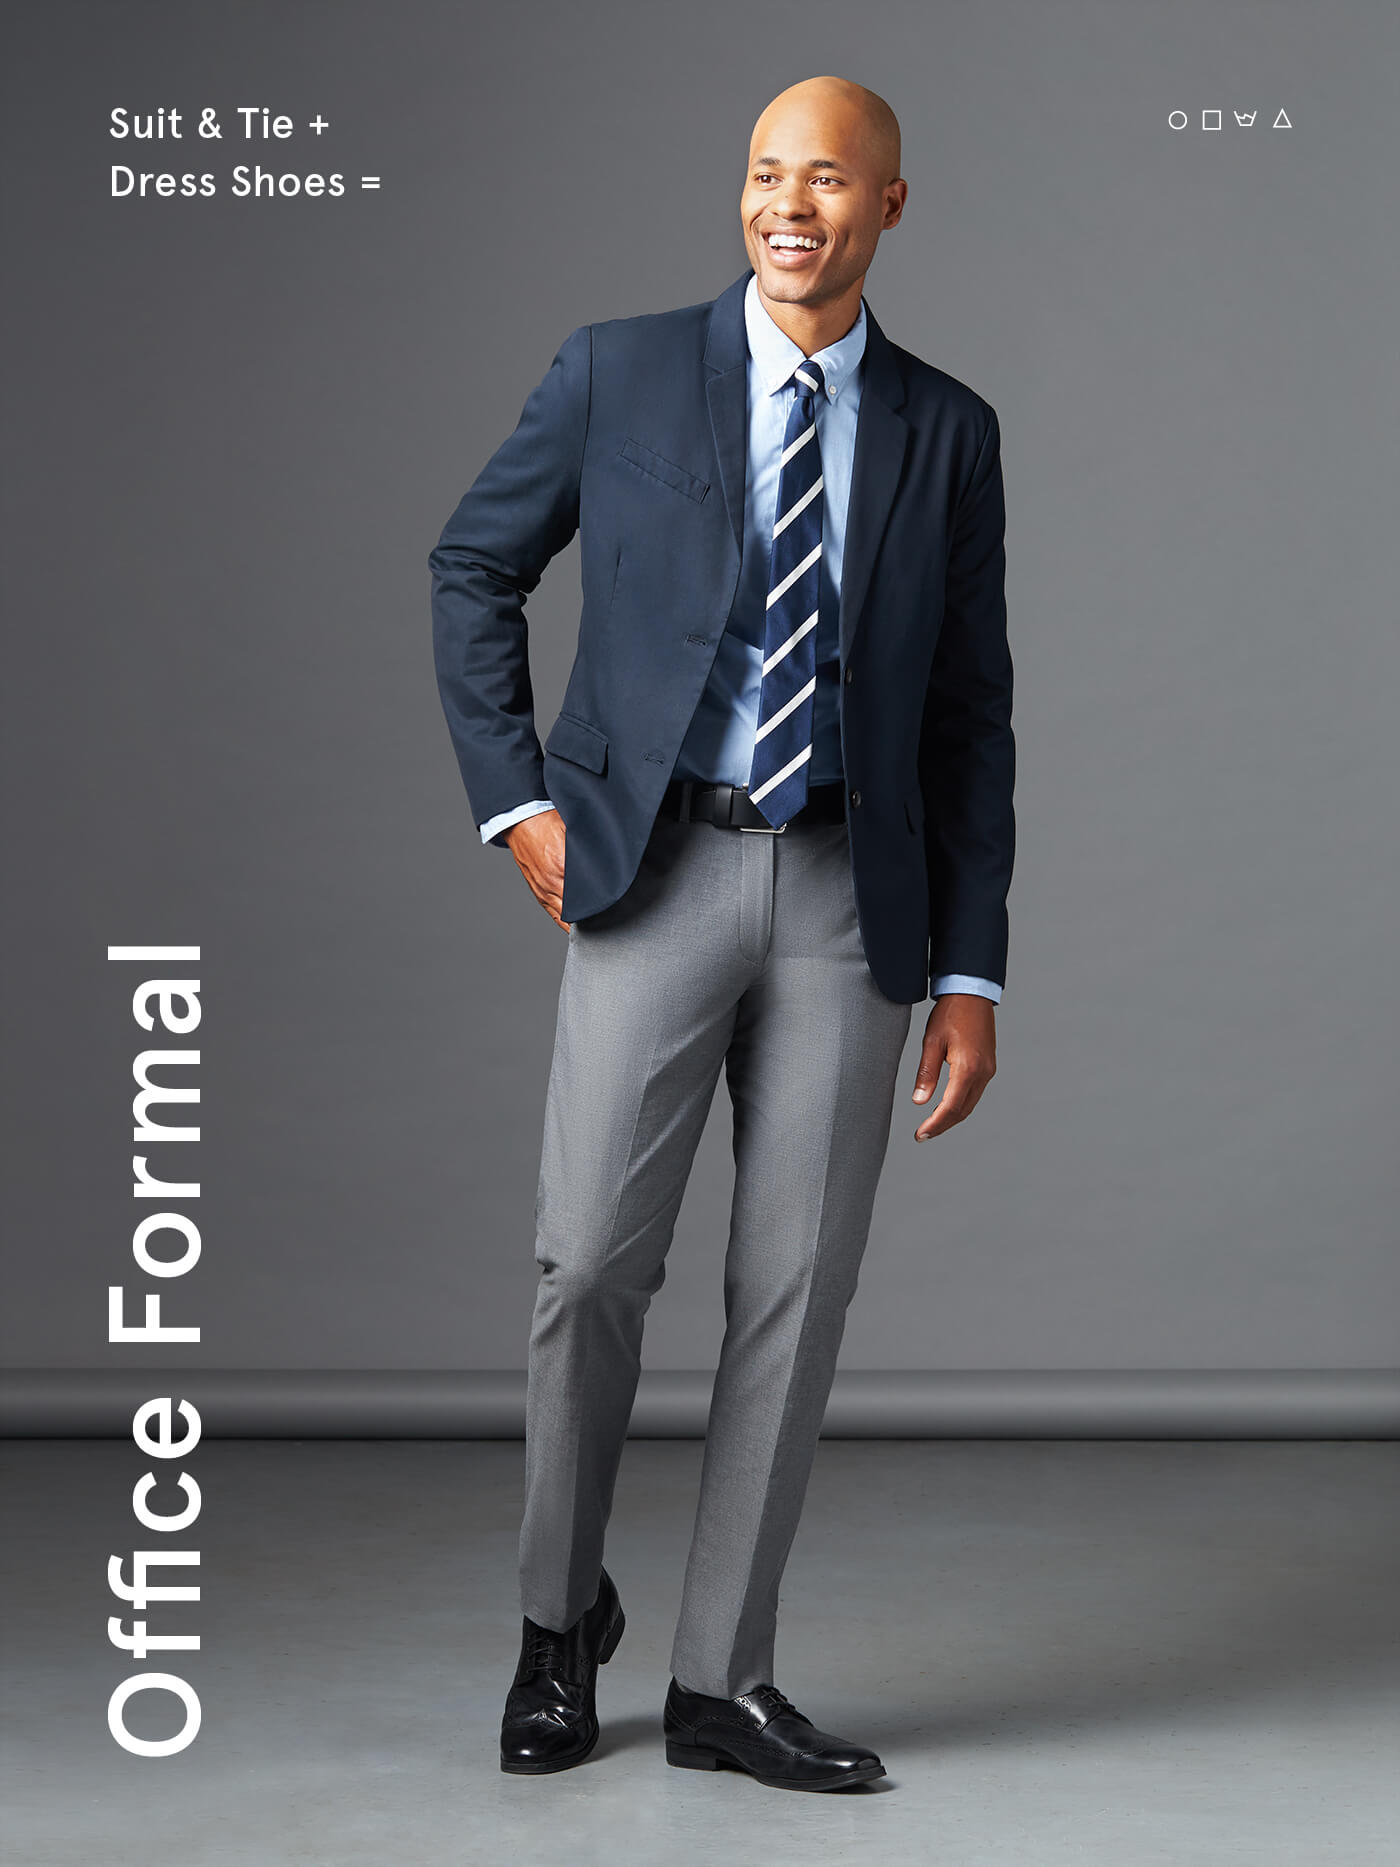 531ca0cb2d what is office formal  suit with a tie and dress shoes